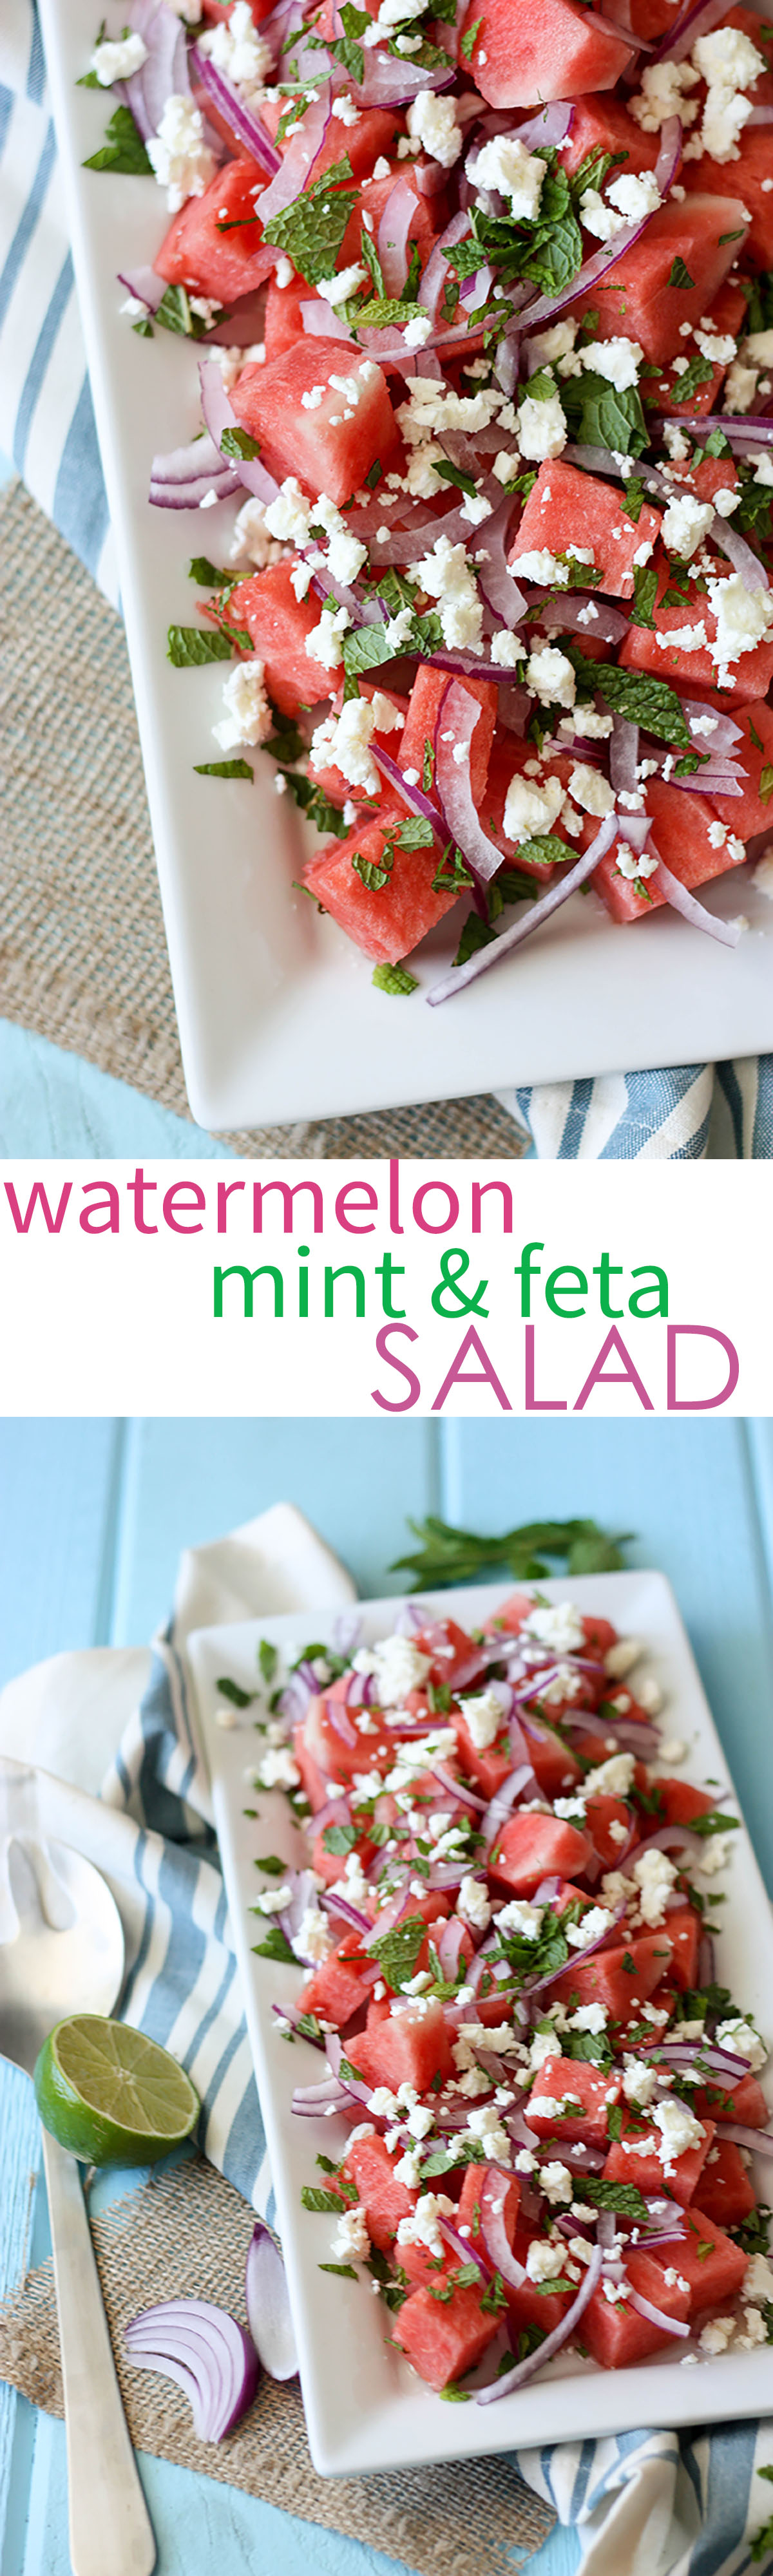 Watermelon Mint Feta Salad www.thehomecookskitchen.com a salad your guests will love